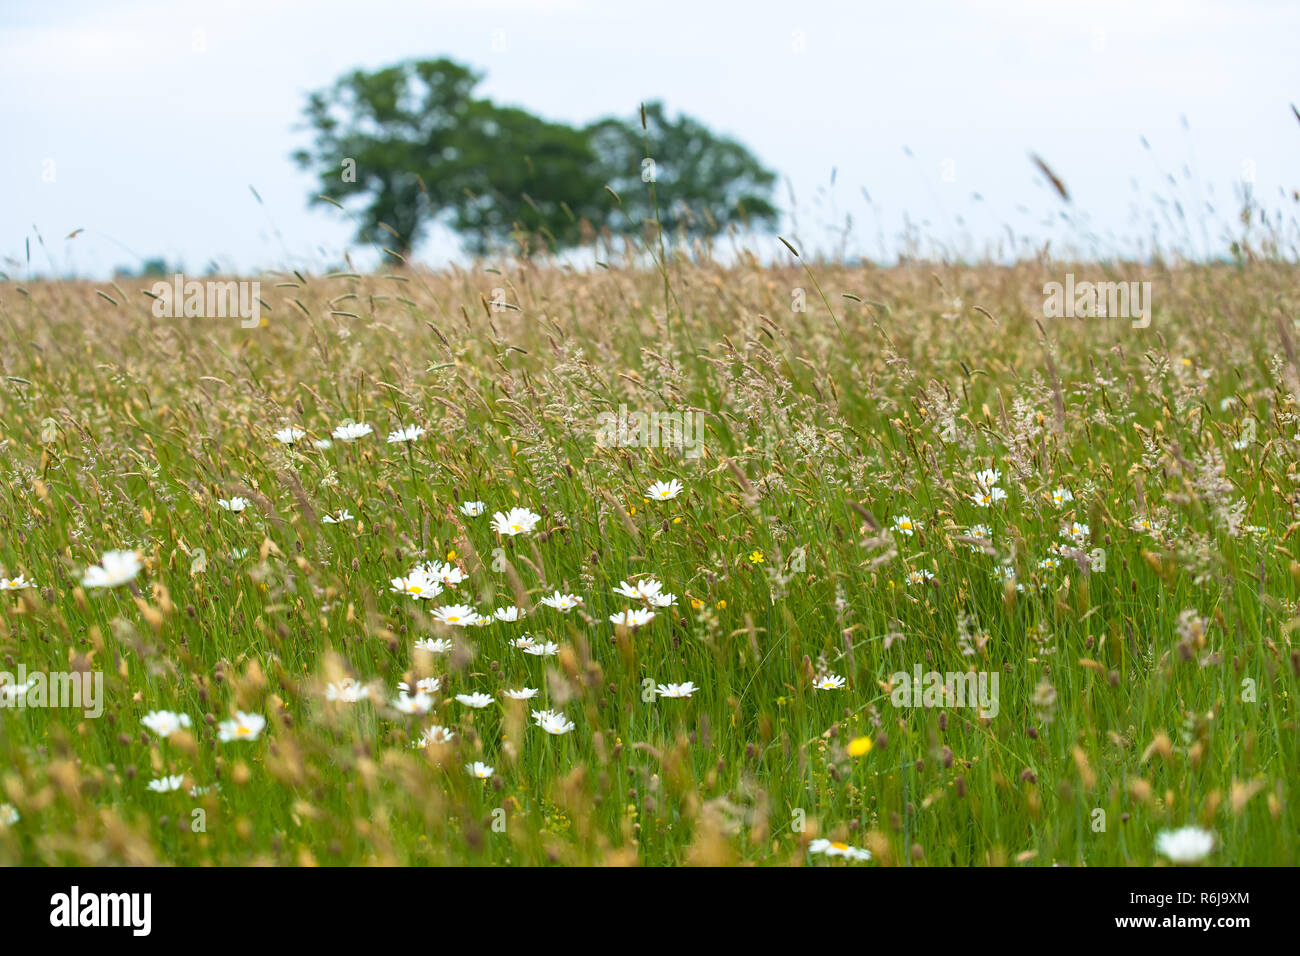 Views over a natural pasture with grasses, wild flowers and natural vegetation. On the horizon large green leafy trees on a sloping horizon. An old sa - Stock Image